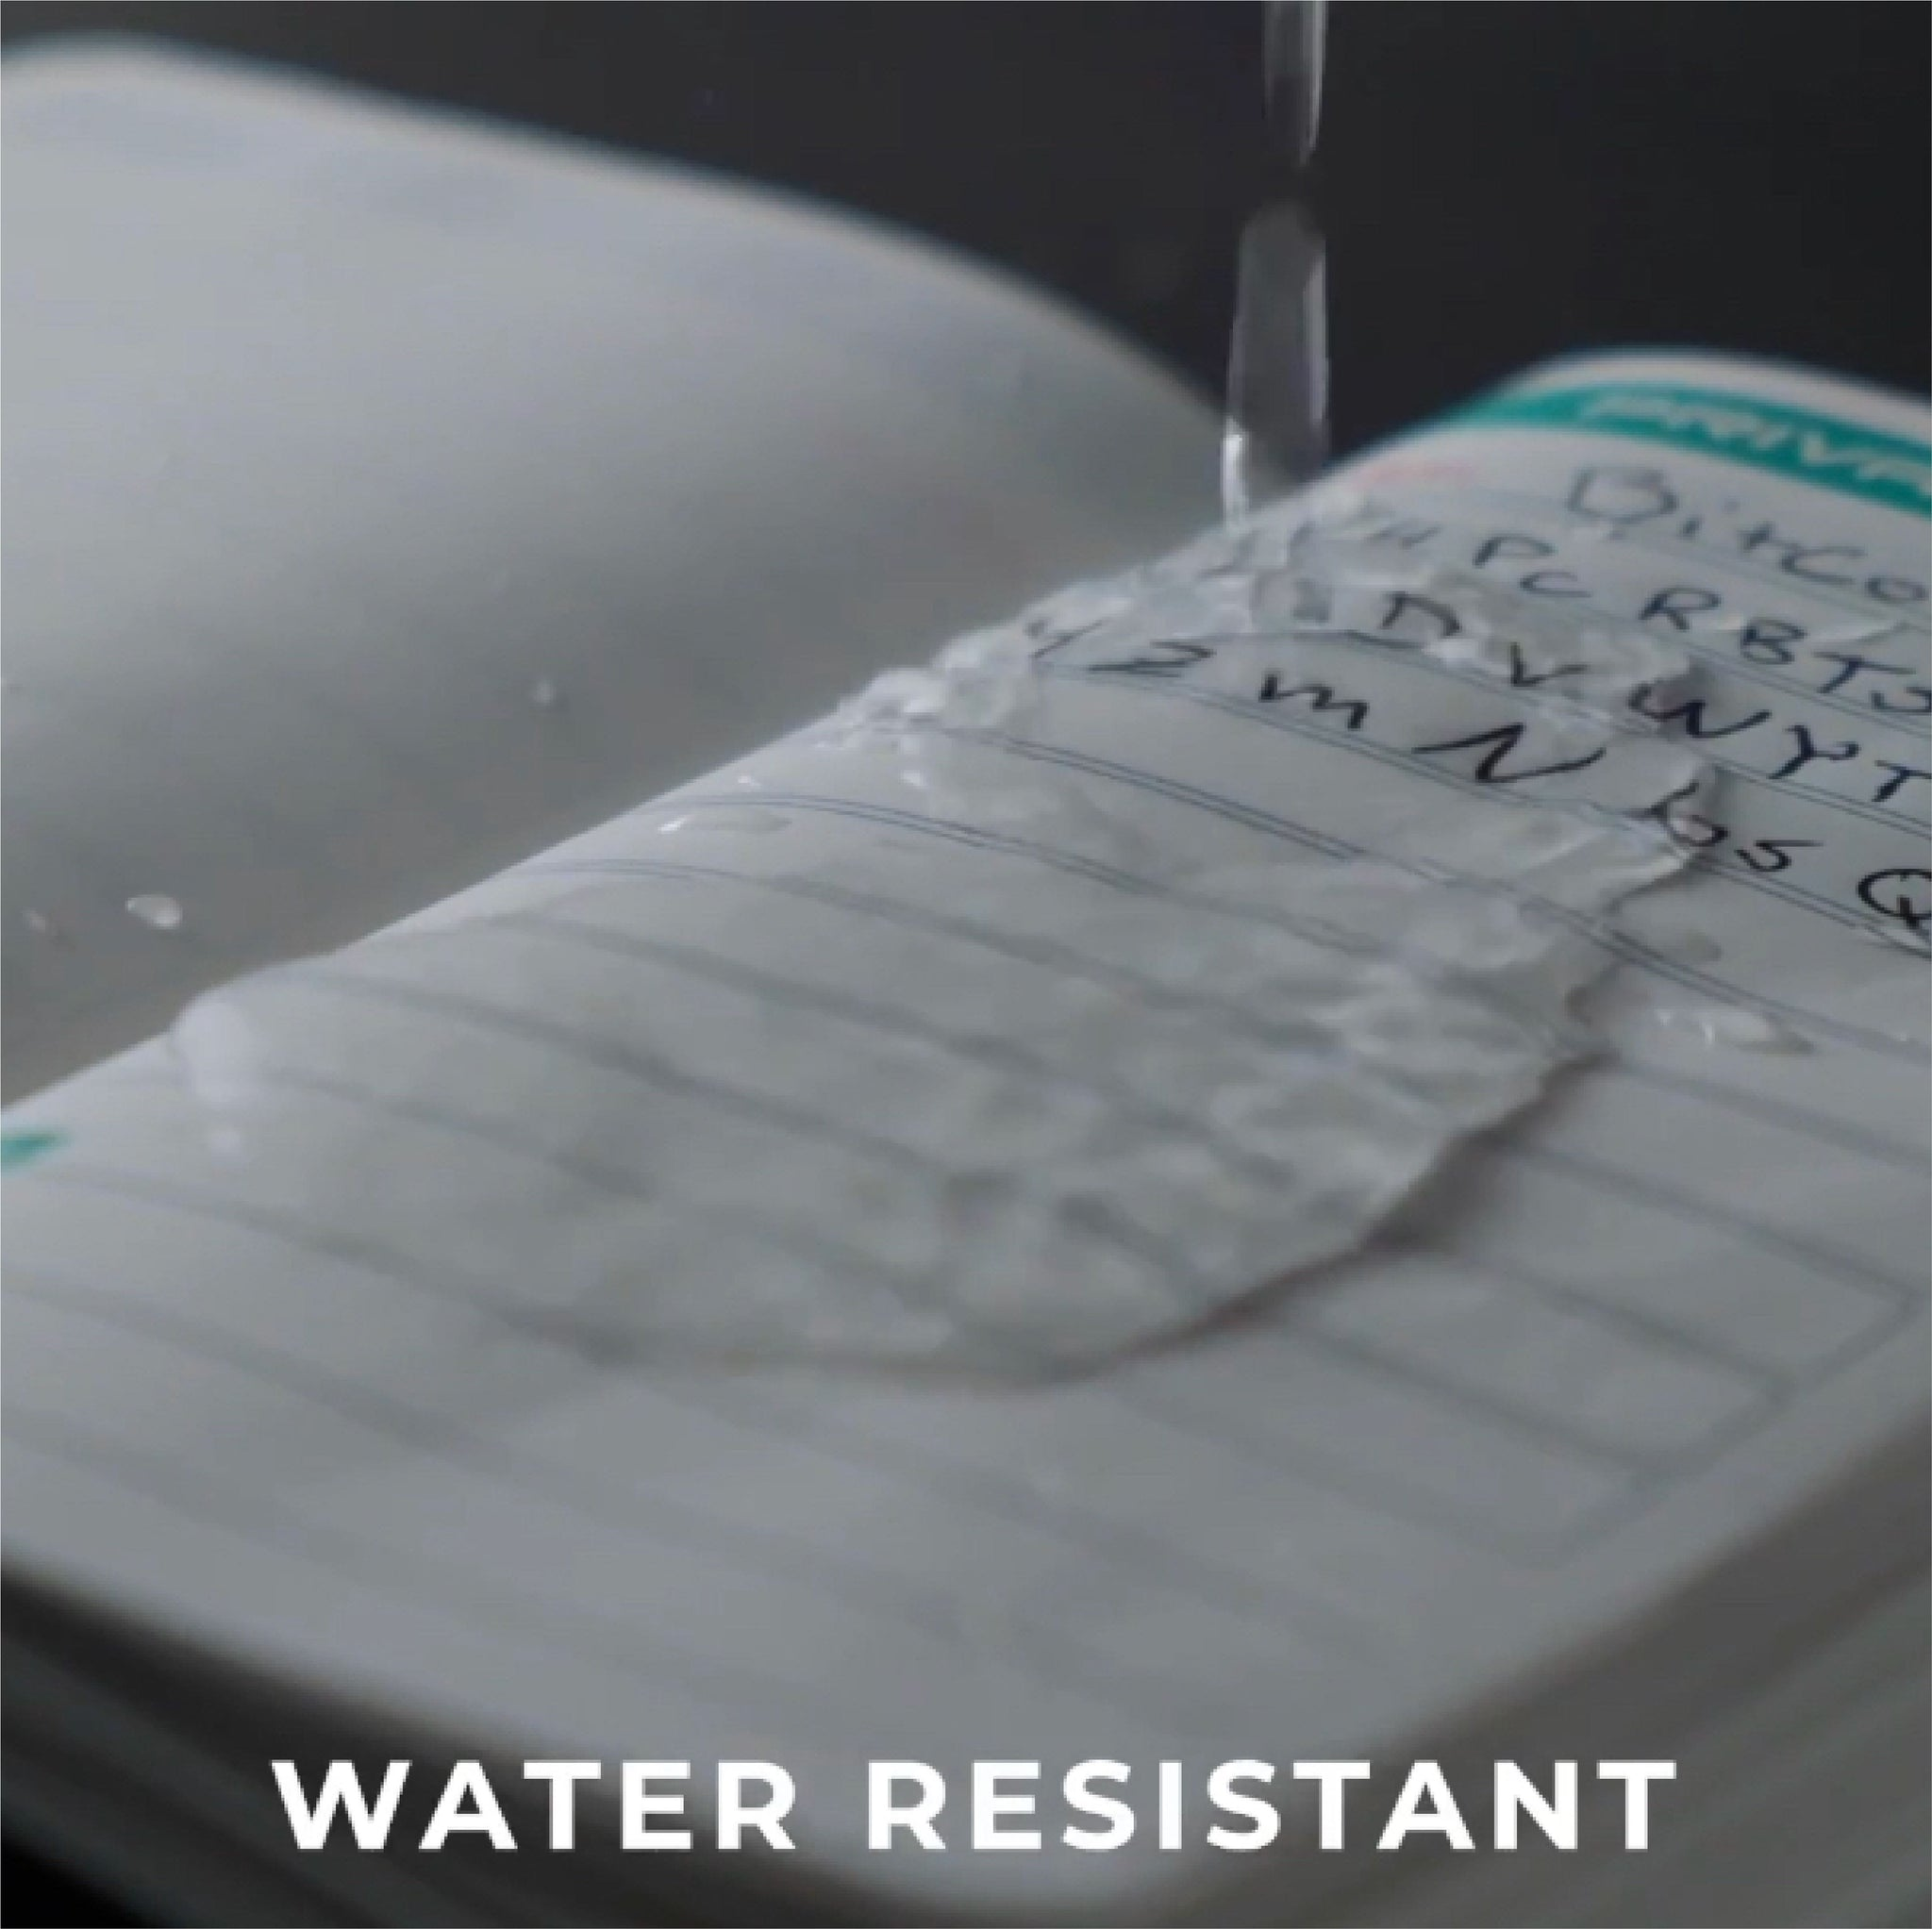 A picture of the Stonebook ™ Notebook having water poured on it, demonstrating it's water resistant pages